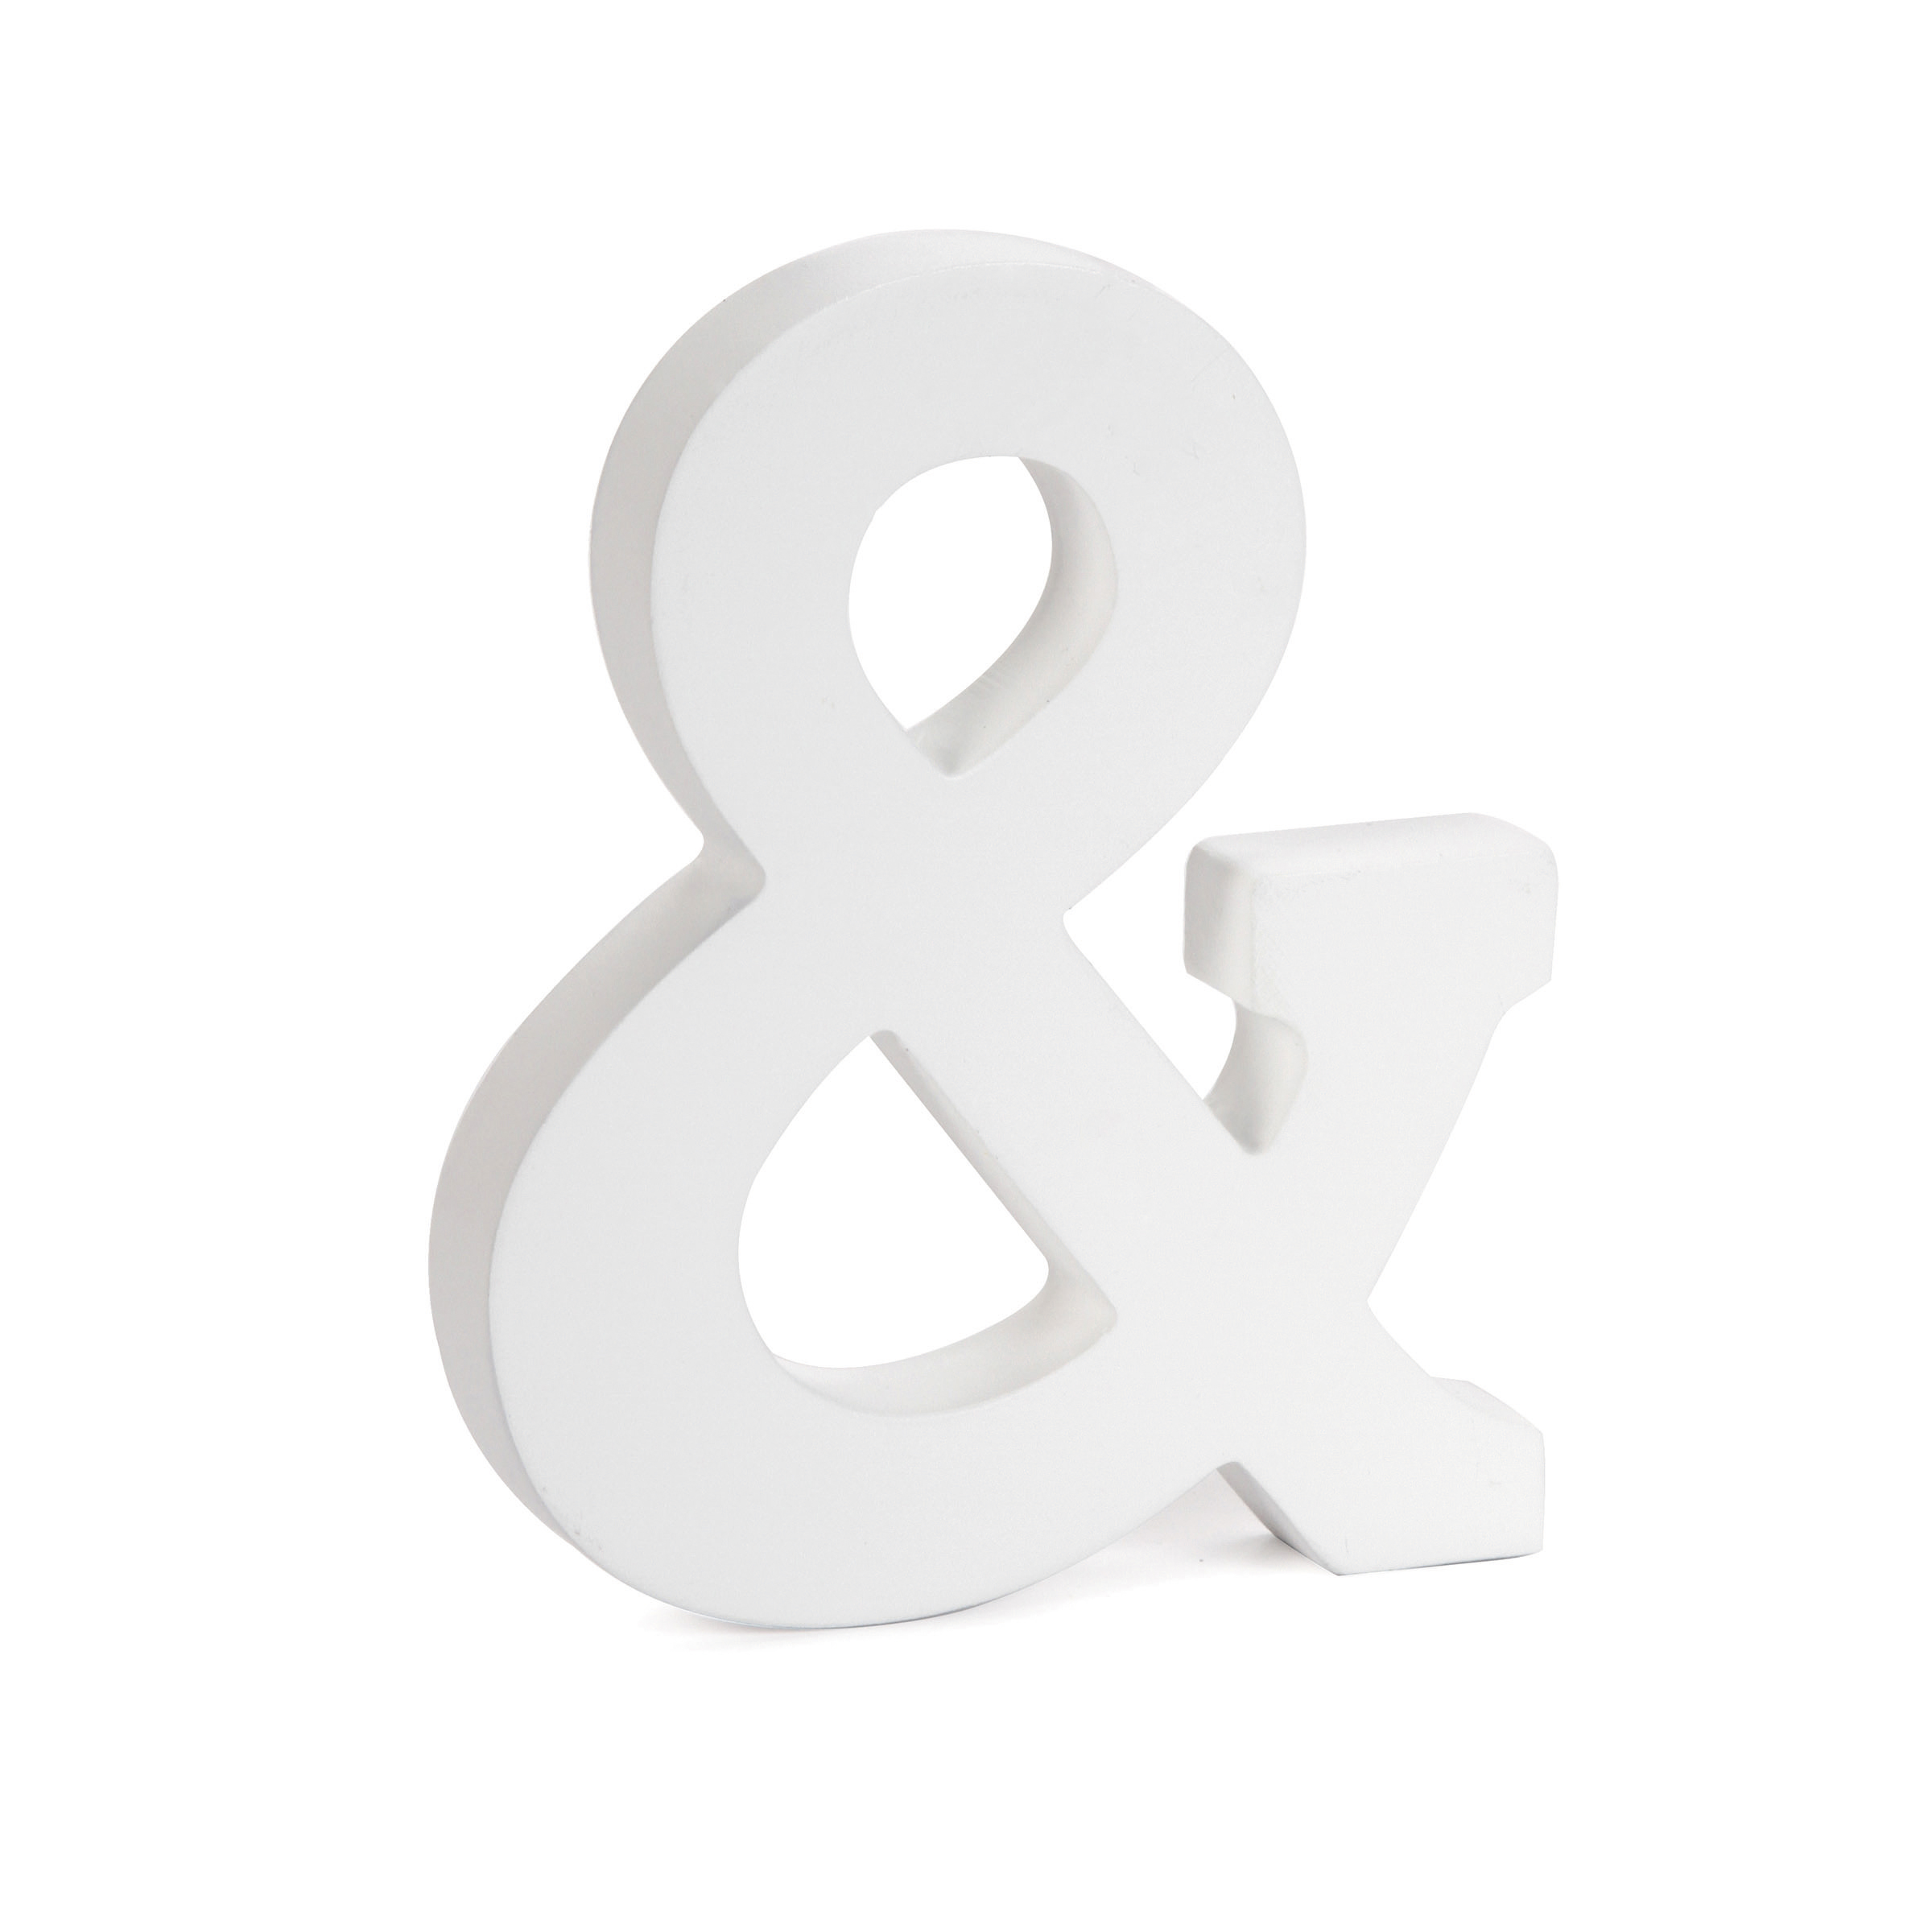 6 inch White Wood Letter Ampersand